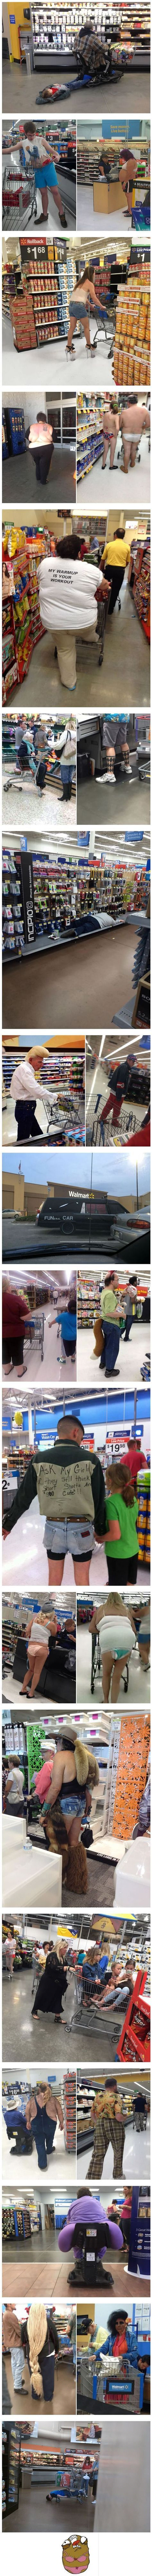 26 WTF Moments That Could Only Happen At Walmart